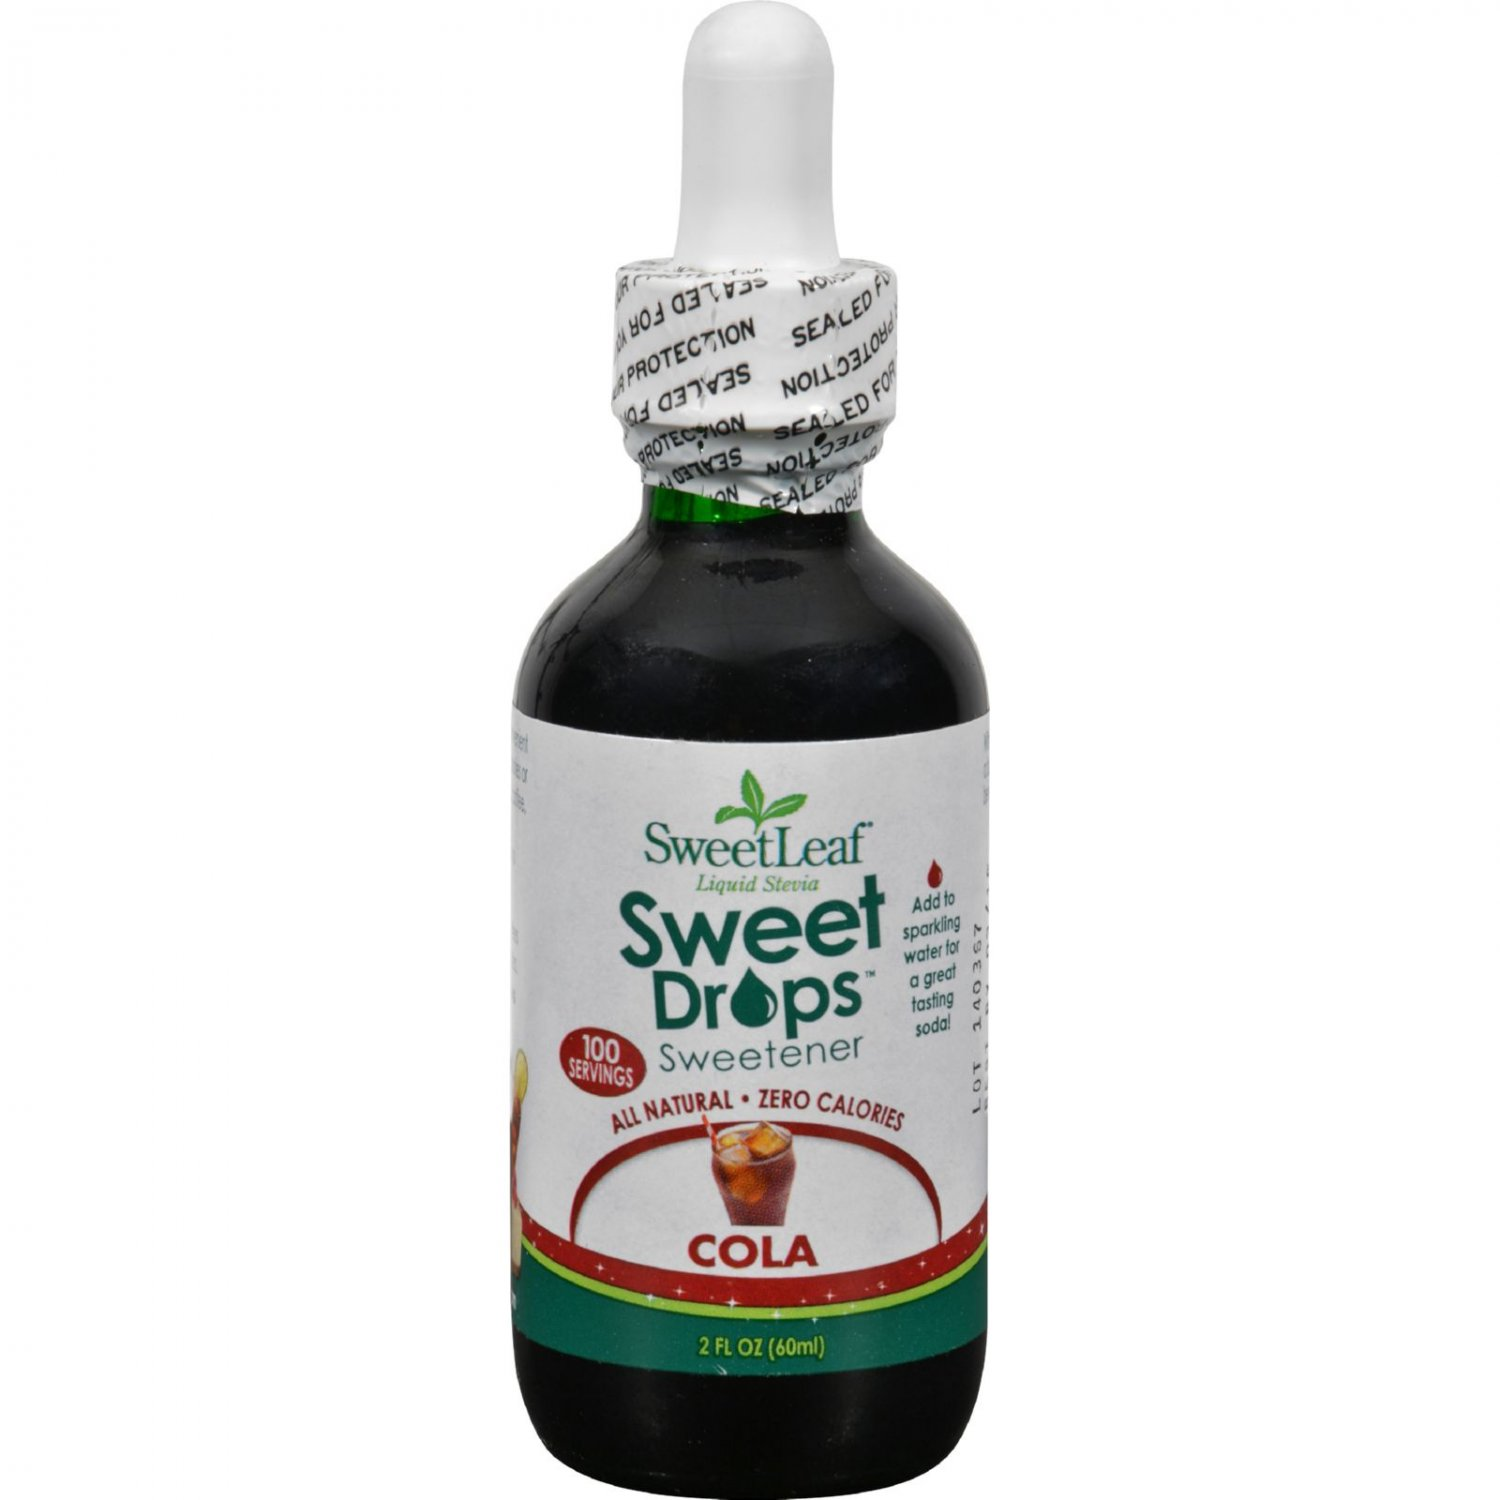 Sweet Leaf Sweet Drops Cola - 2 fl oz